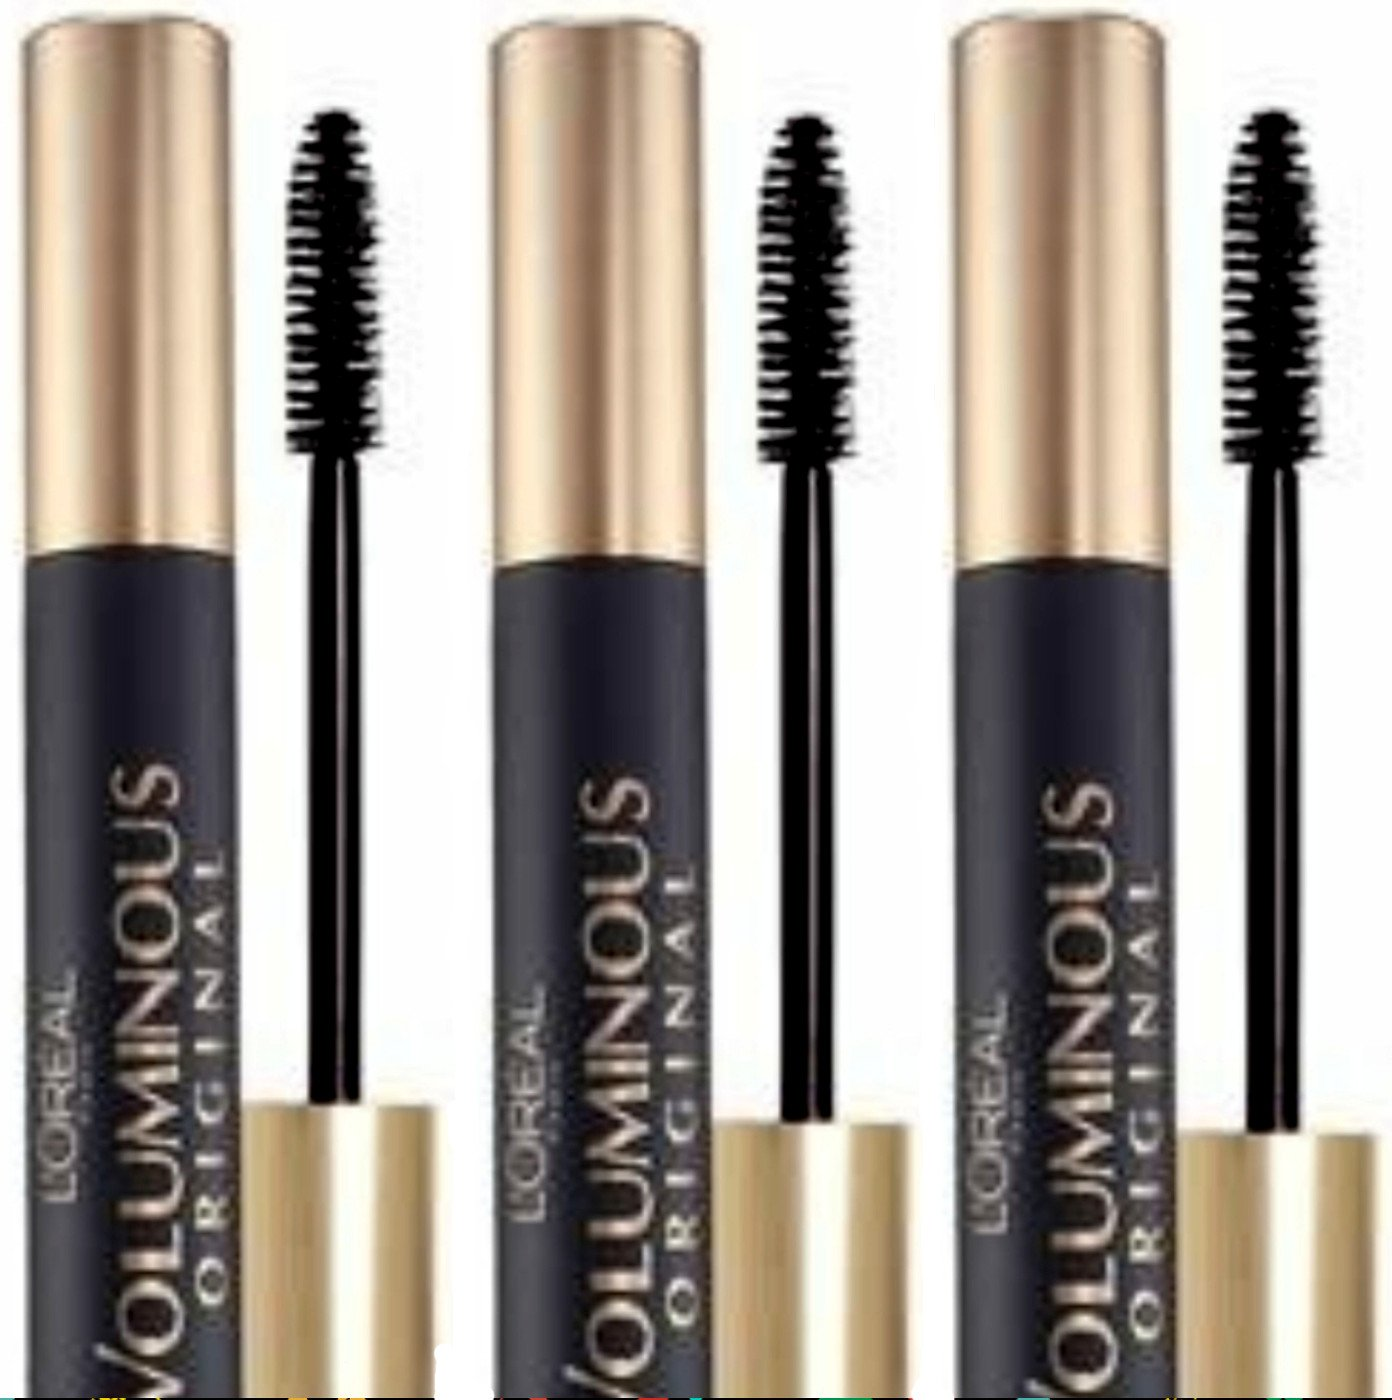 580803393fe Amazon.com: Loreal Paris Original Voluminous Black 305 Volume Building  Mascara -- 3 per case.: Health & Personal Care